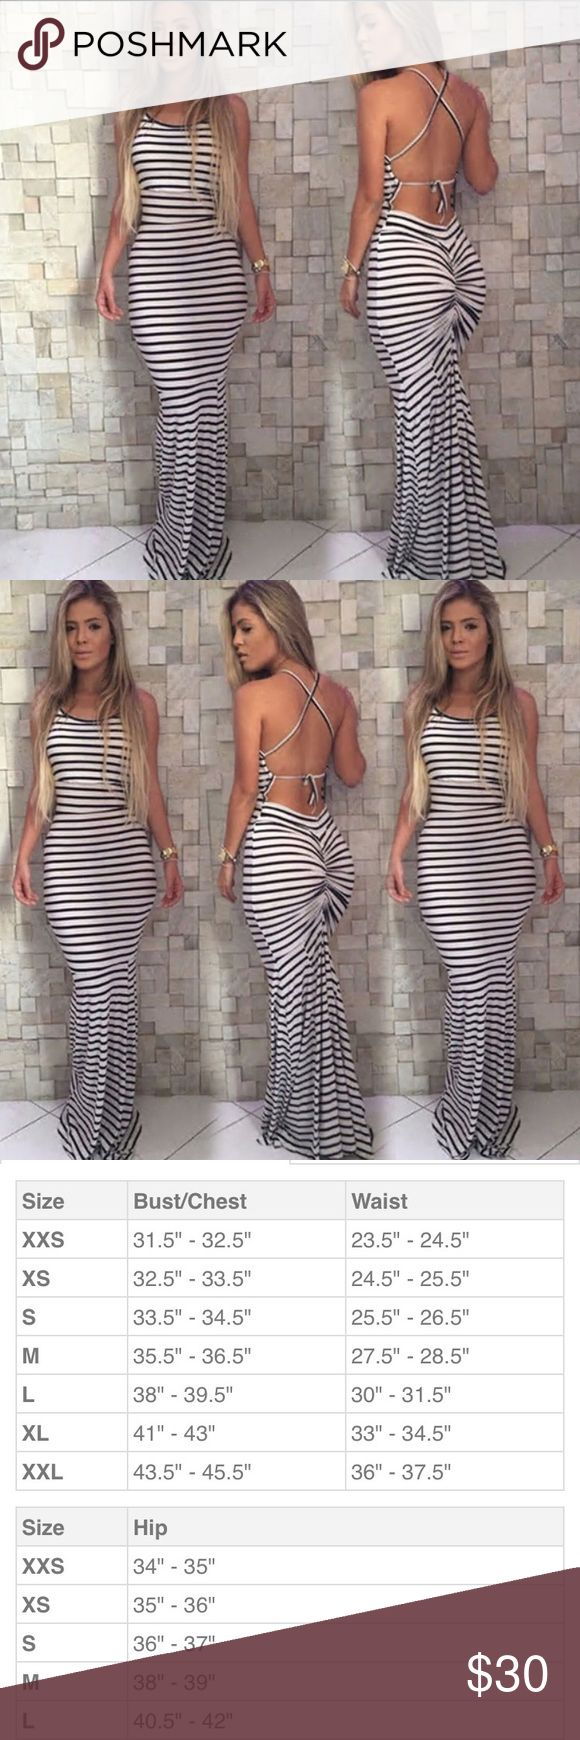 ❤Just in❤ Sexy summer dress! Black and white sexy summer maxi dress. This dress is so fabulous! Dresses Maxi